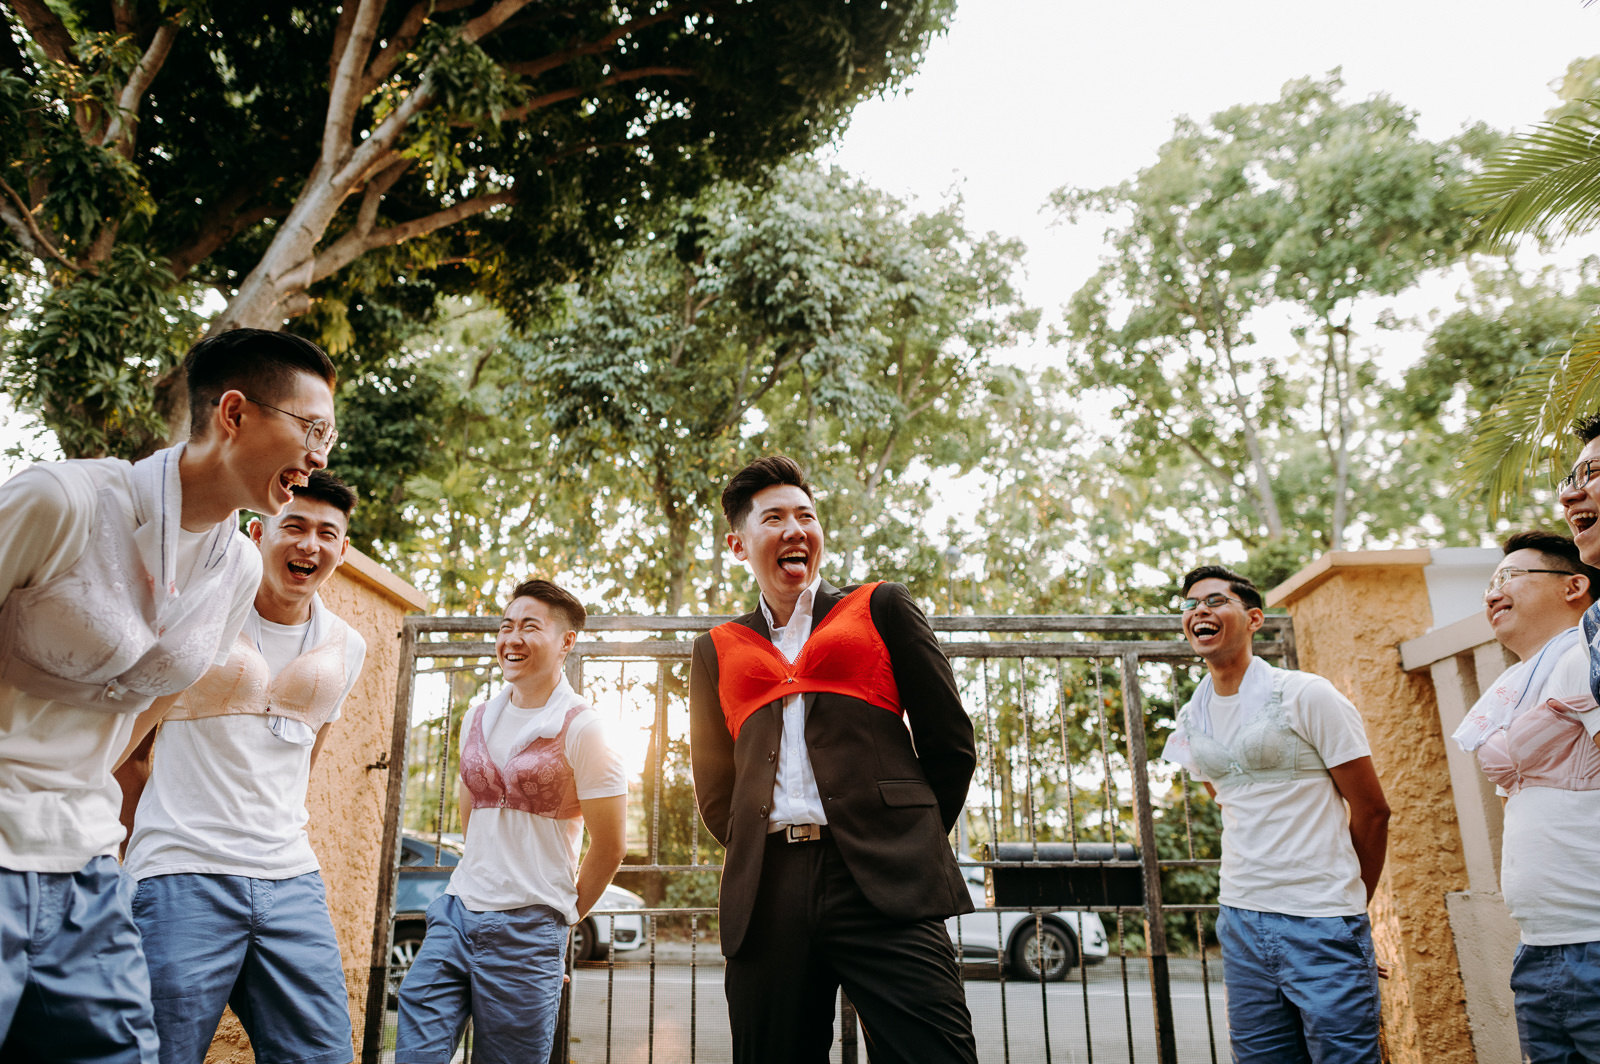 Groomsmen participating in games having memorable time photography photographer wedding event